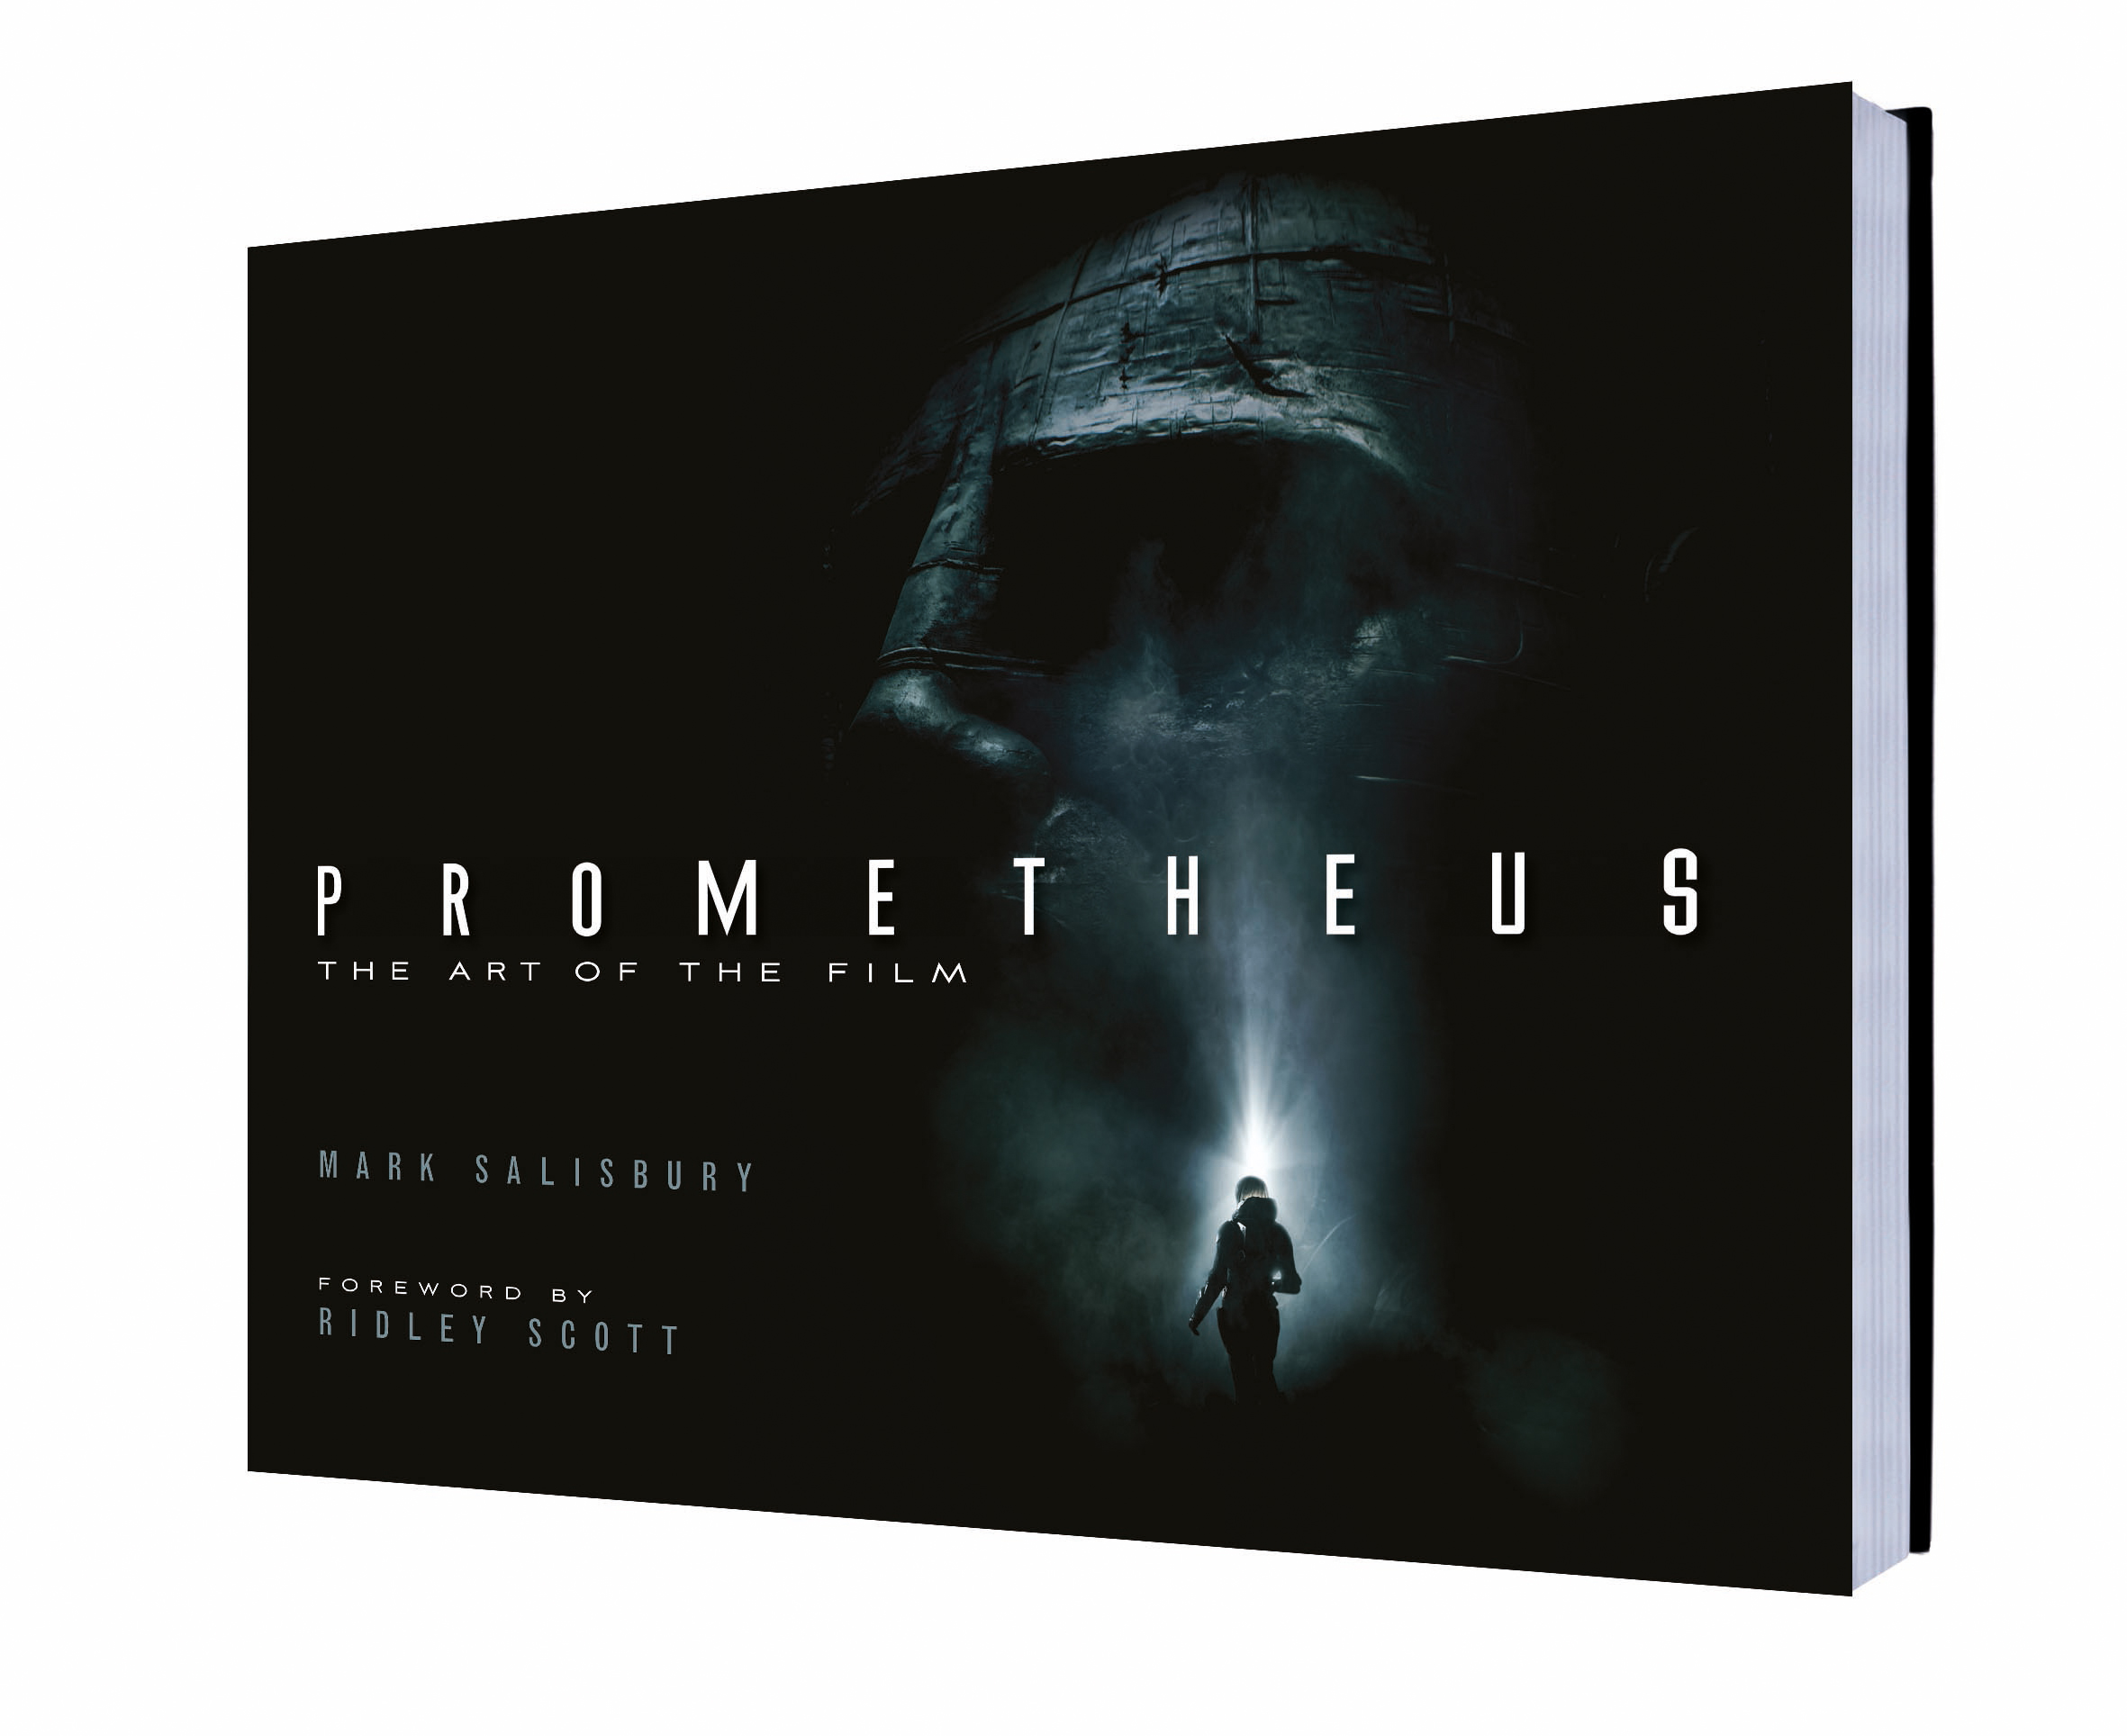 Book Cover Art Commission : The book of alien and prometheus art film